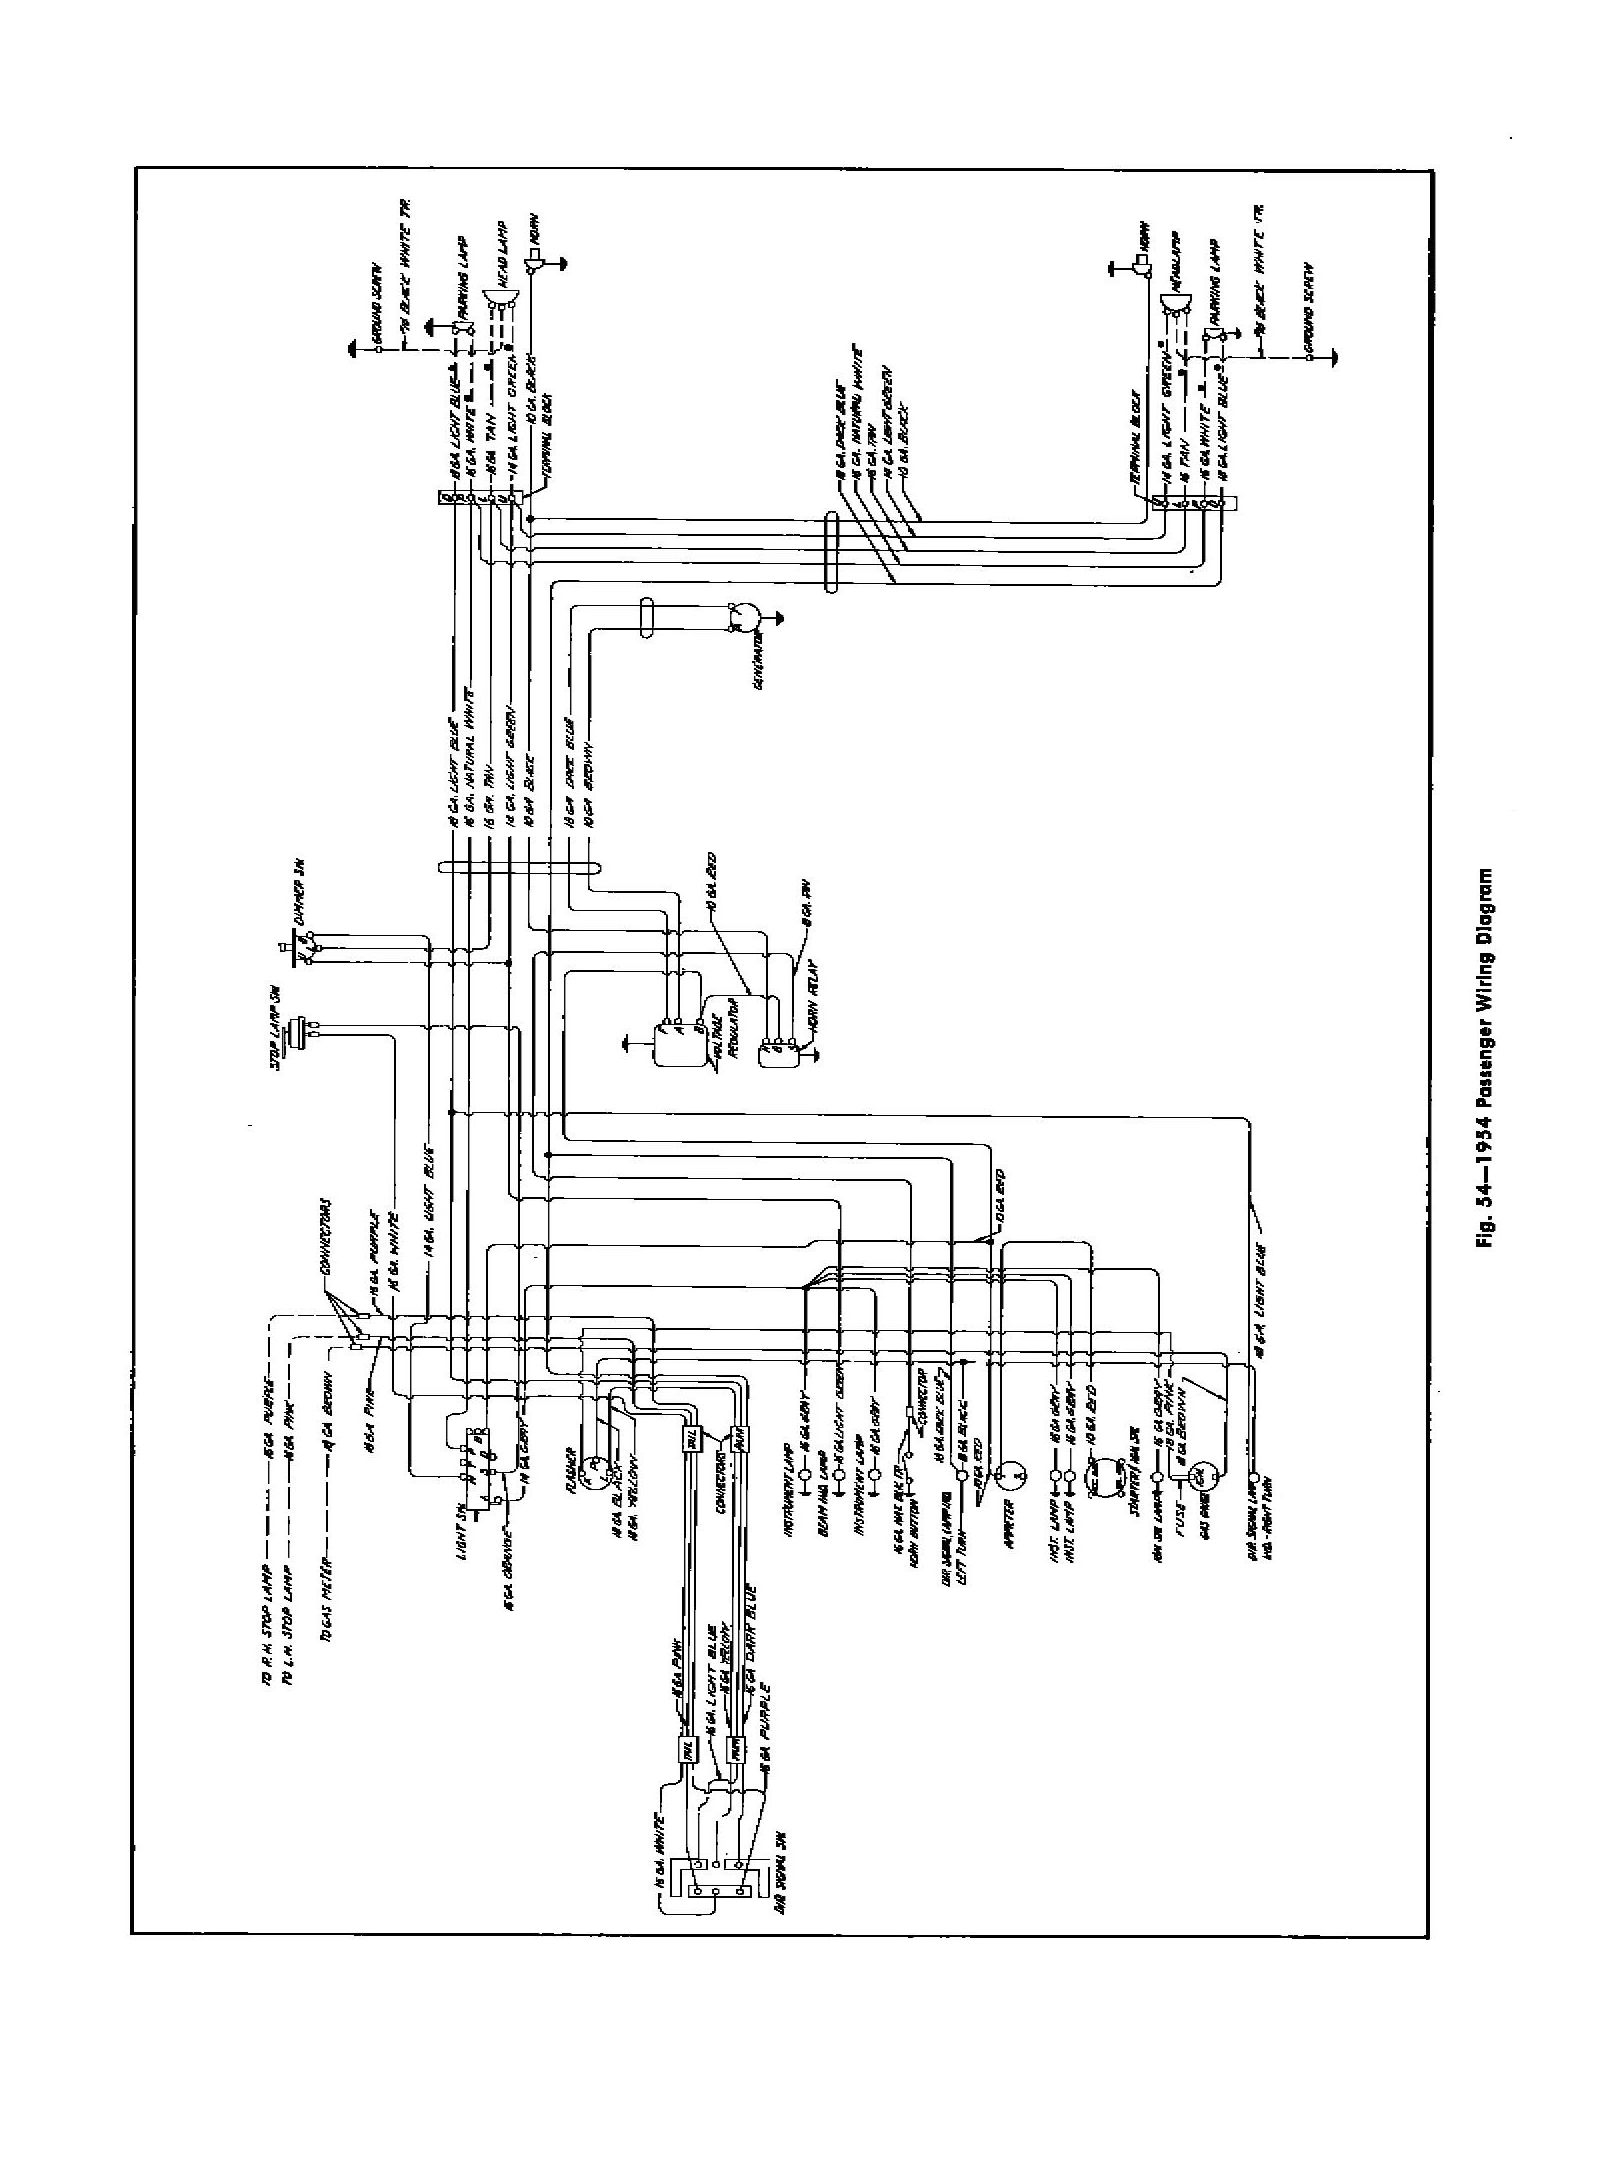 1954 Chevrolet Wiring Diagram For Car, 1954, Free Engine